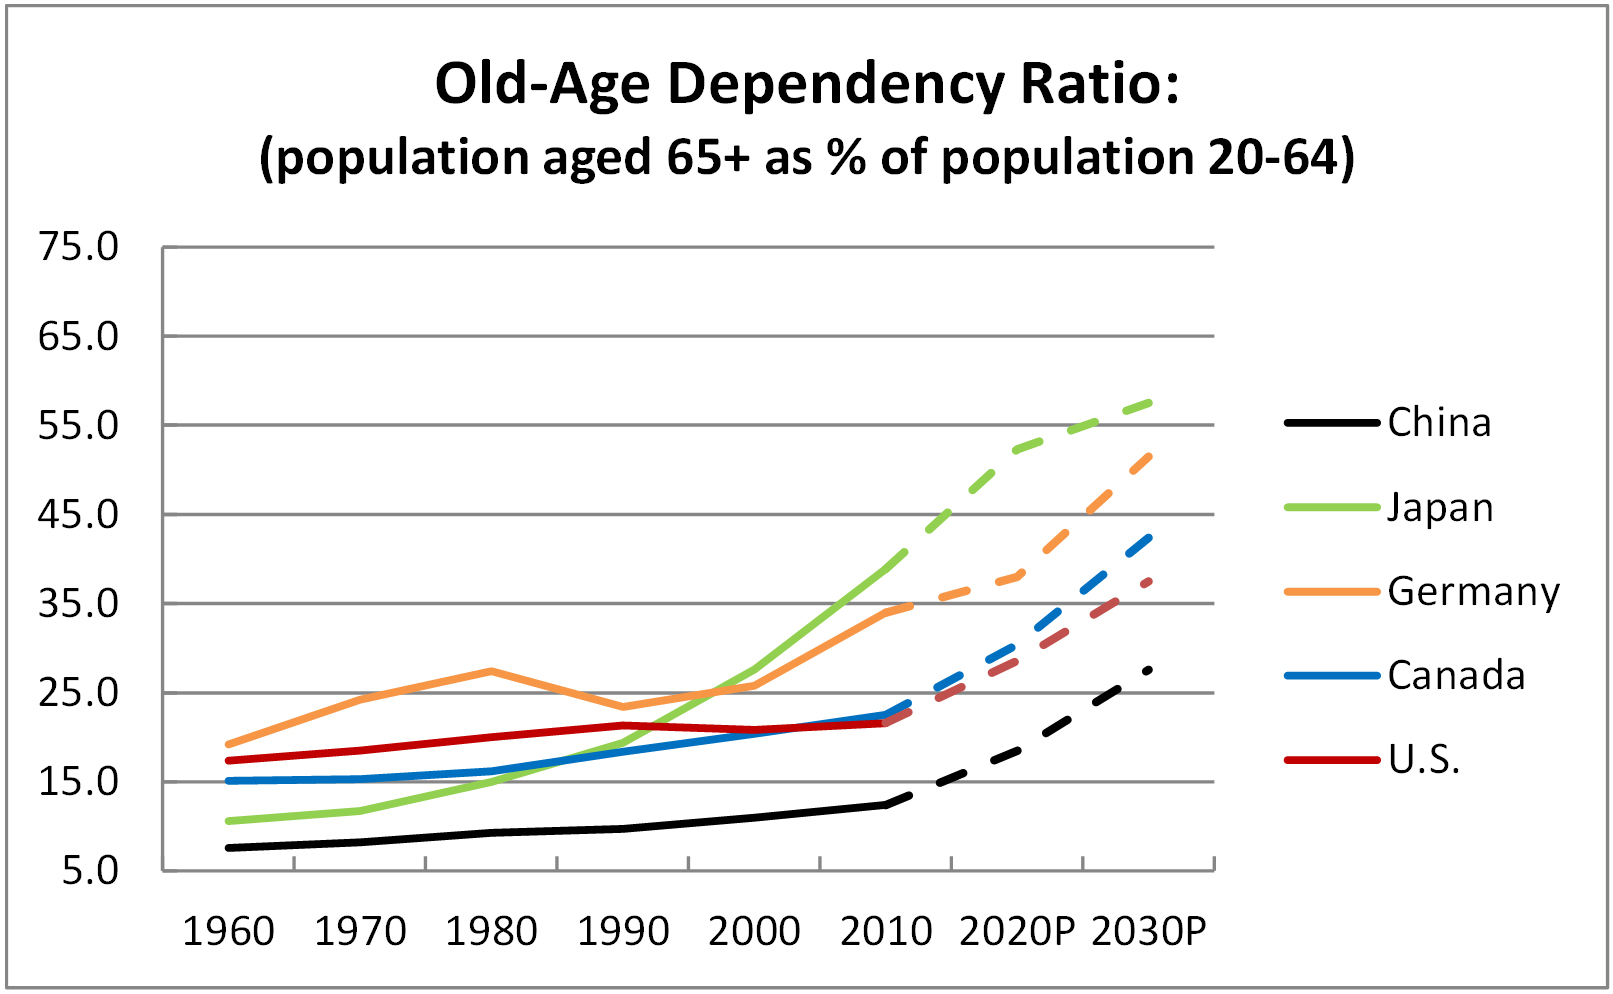 Chart 2.1 - Old-age Dependency Ratio